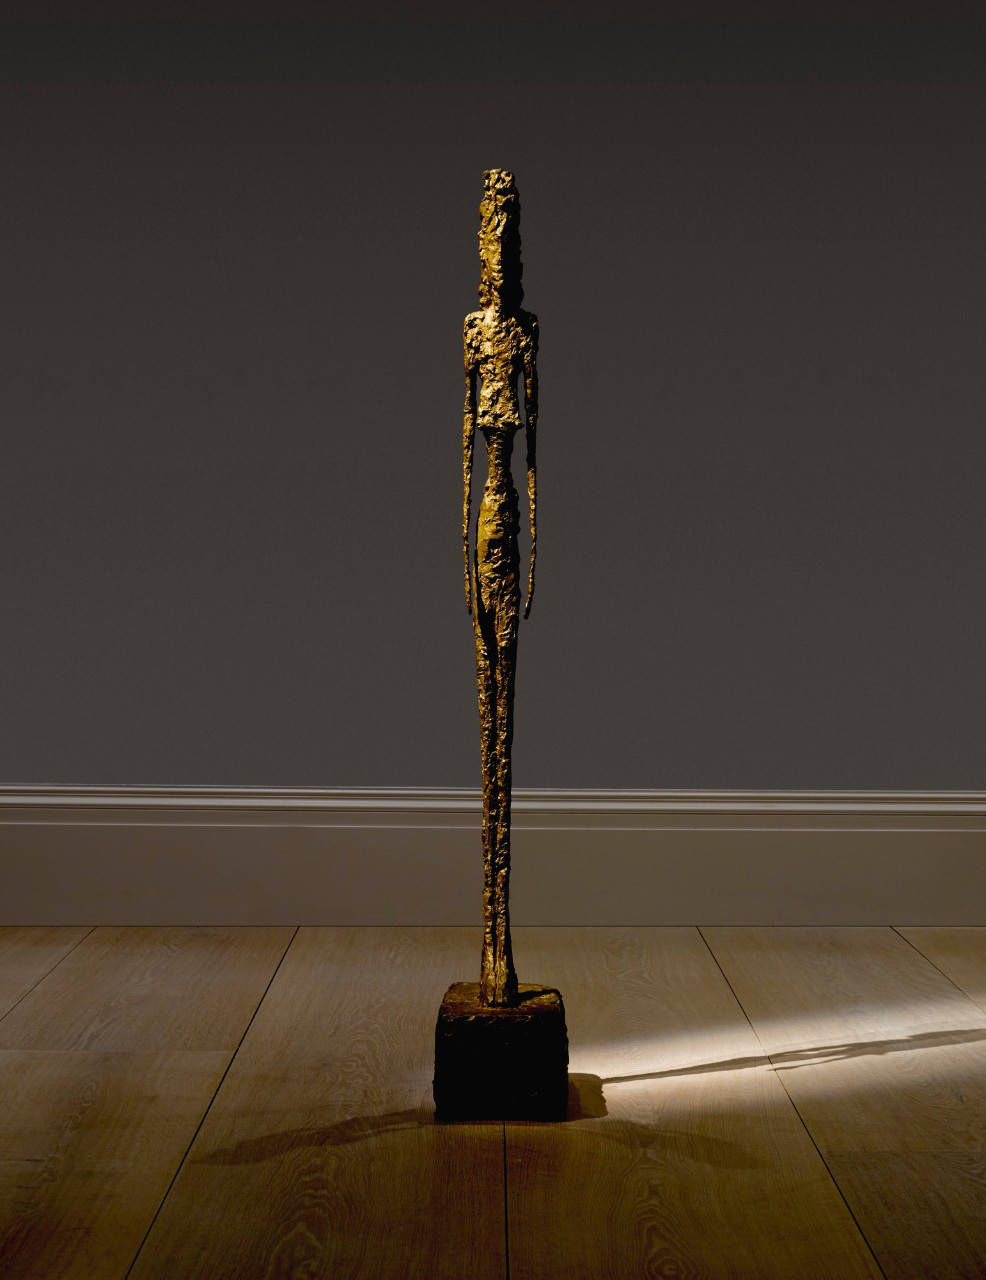 Alberto Giacometti, GRANDE FIGURE. Inscribed A. Giacometti, dated 1947 and with the foundry mark Alexis Rudier Fondeur, Paris. Bronze, height: 130.3cm. 51 1/4 in. Executed in plaster in 1947, this unique bronze was cast by the Alexis Rudier foundry in Paris in 1948.